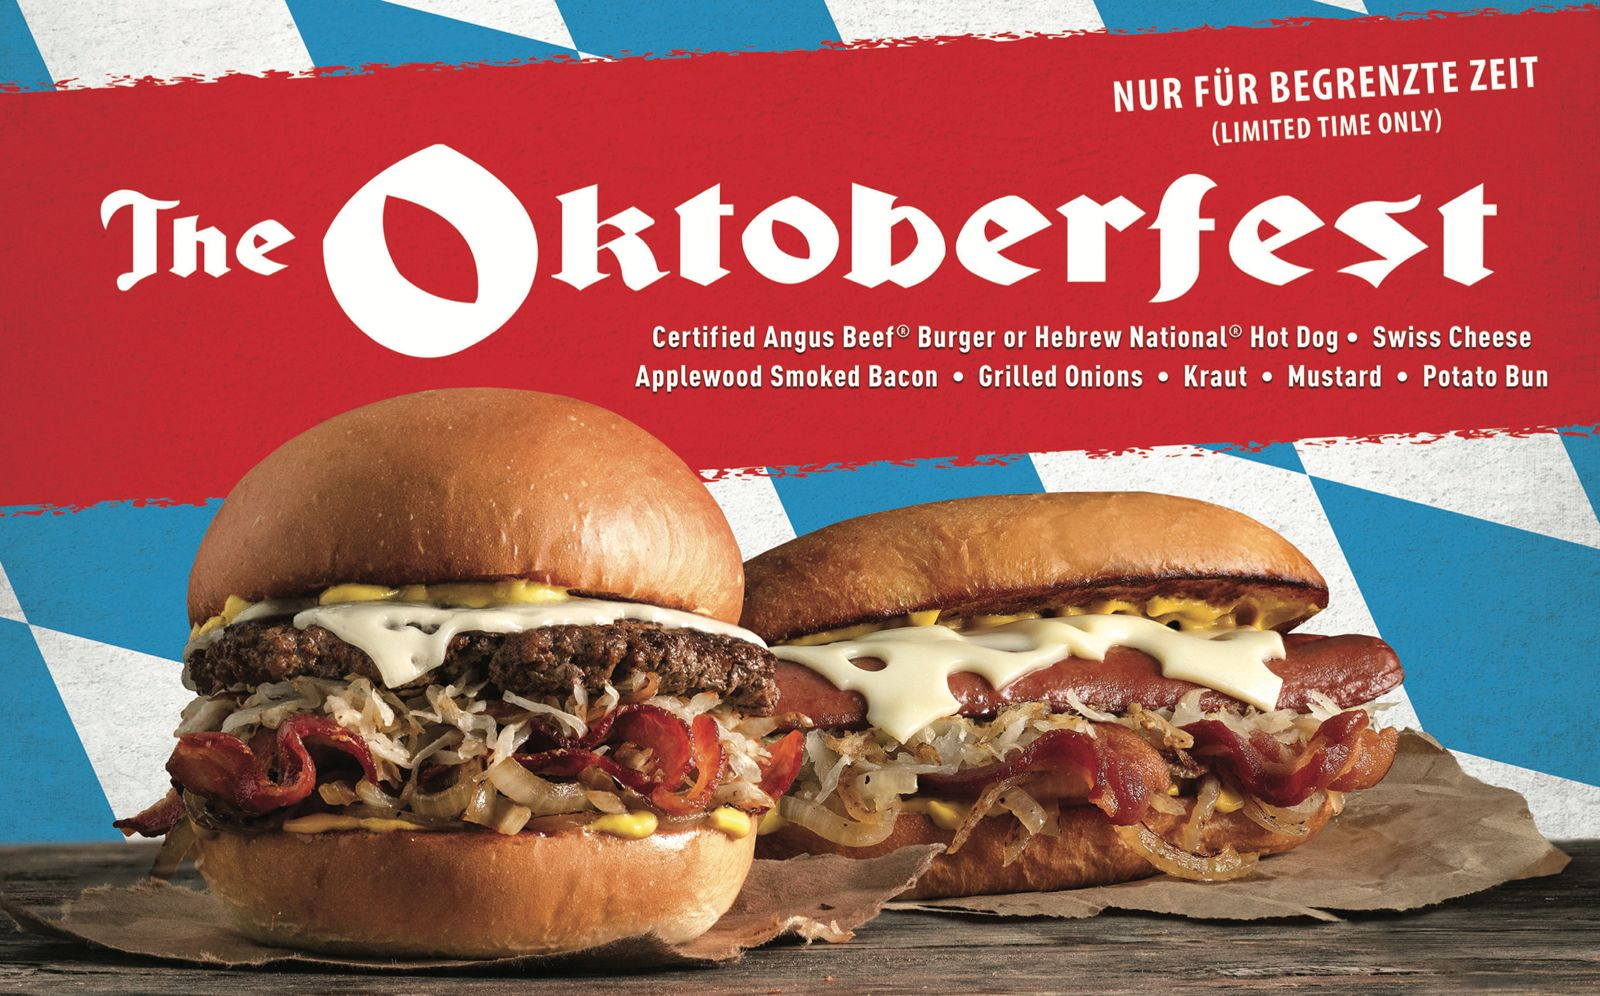 The Oktoberfest is Back: MOOYAH Burgers, Fries & Shakes Brings Back Popular Seasonal Favorite